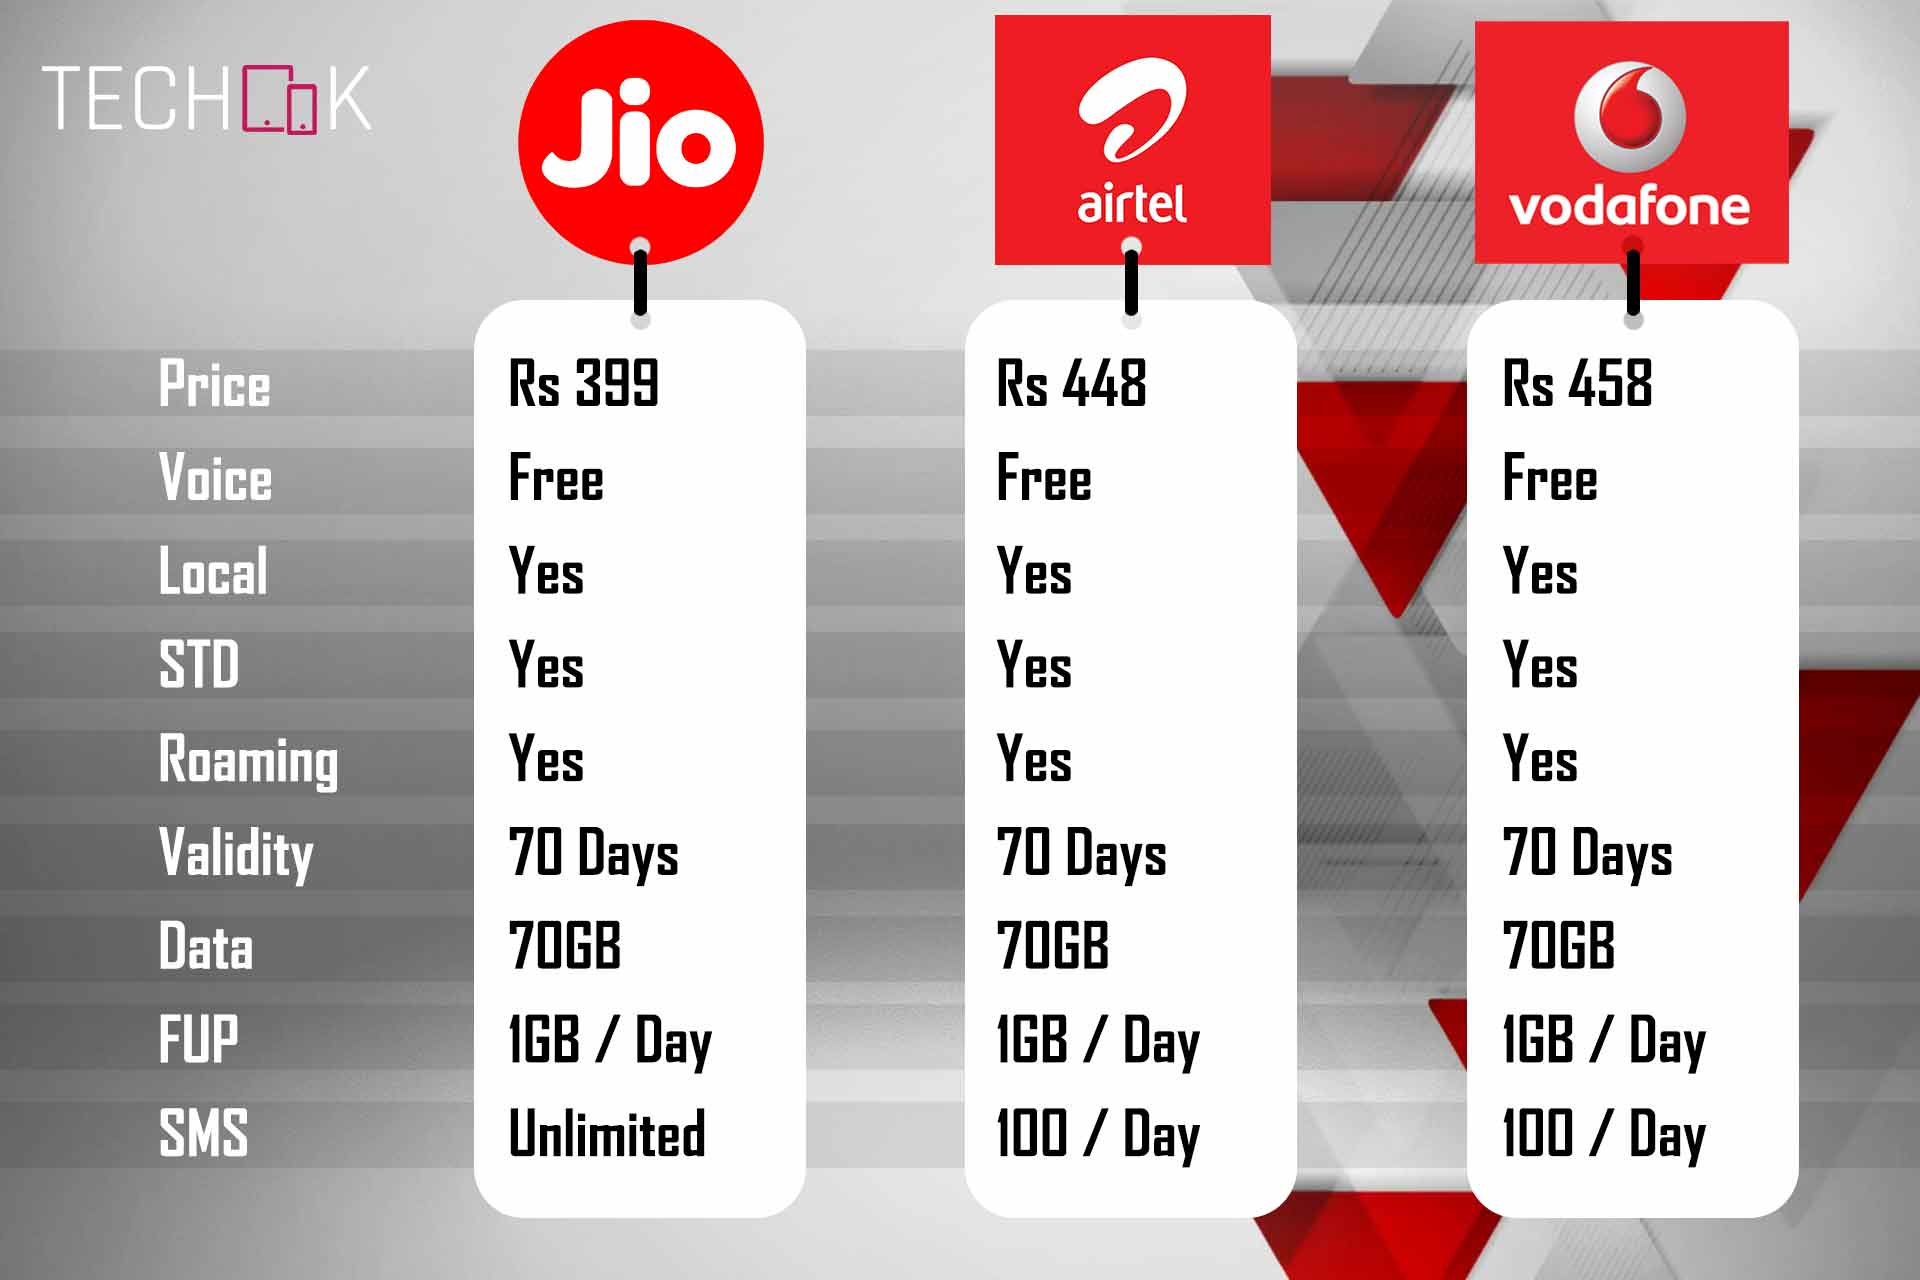 Airtel offers unlimited voice calls, national roaming at Rs 199 plan